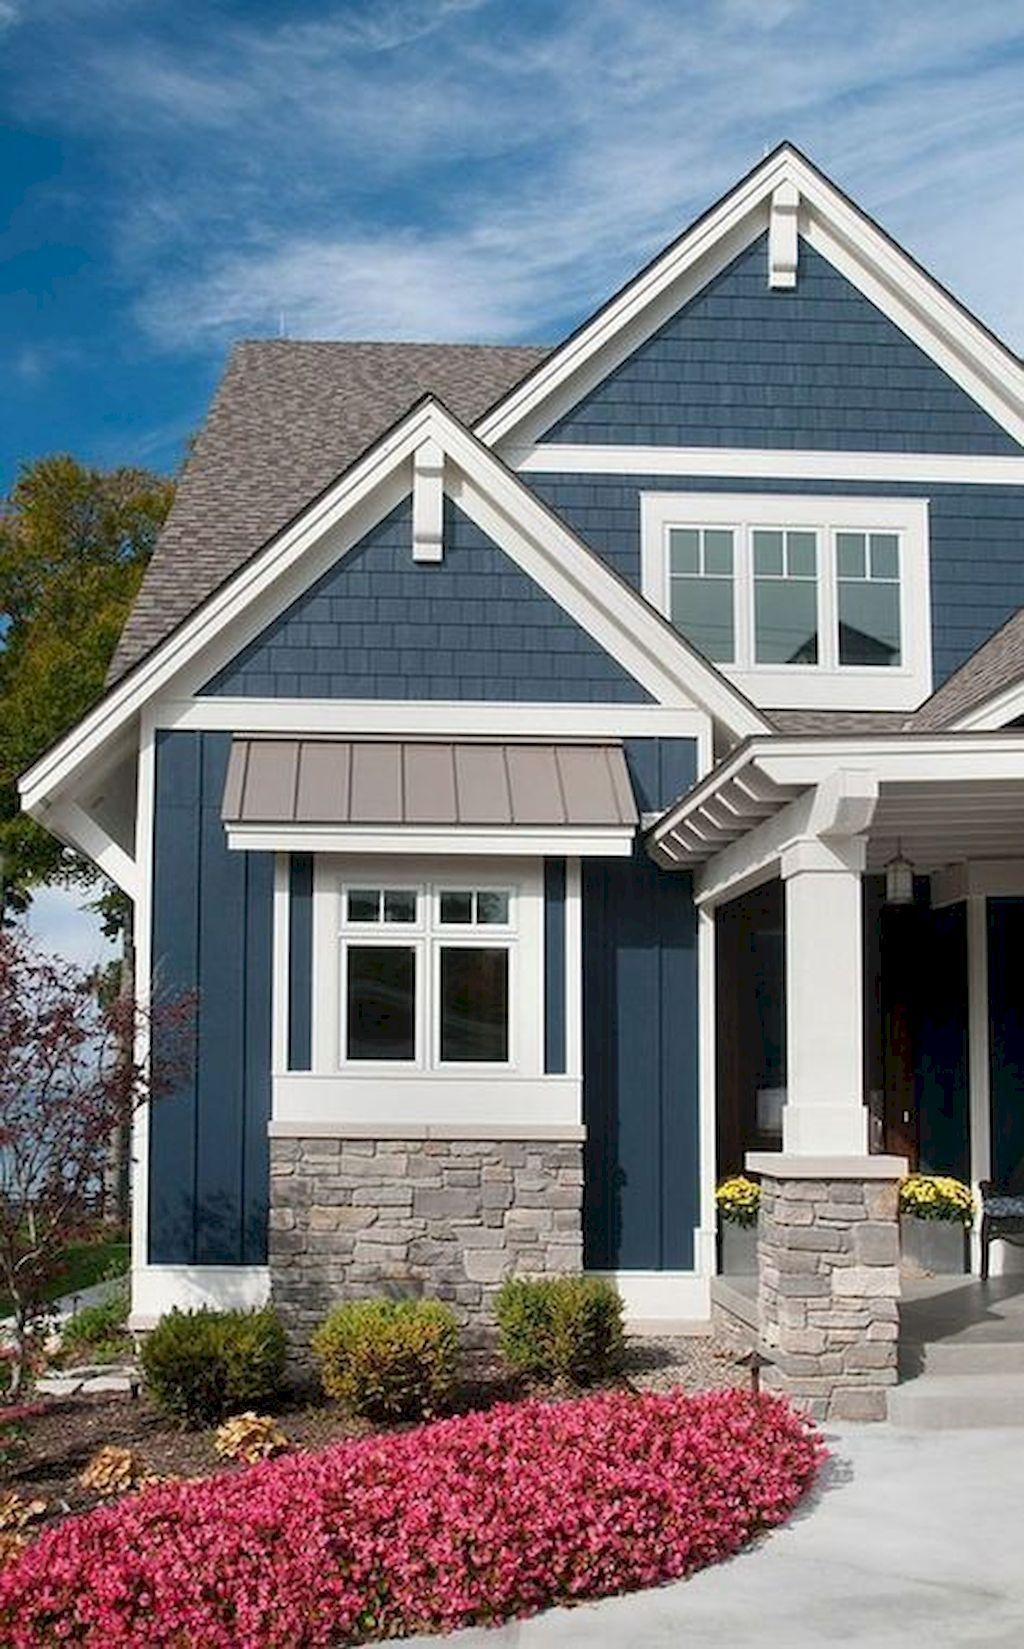 09 awesome modern farmhouse exterior design ideas in 2020 on exterior home paint ideas pictures id=78646